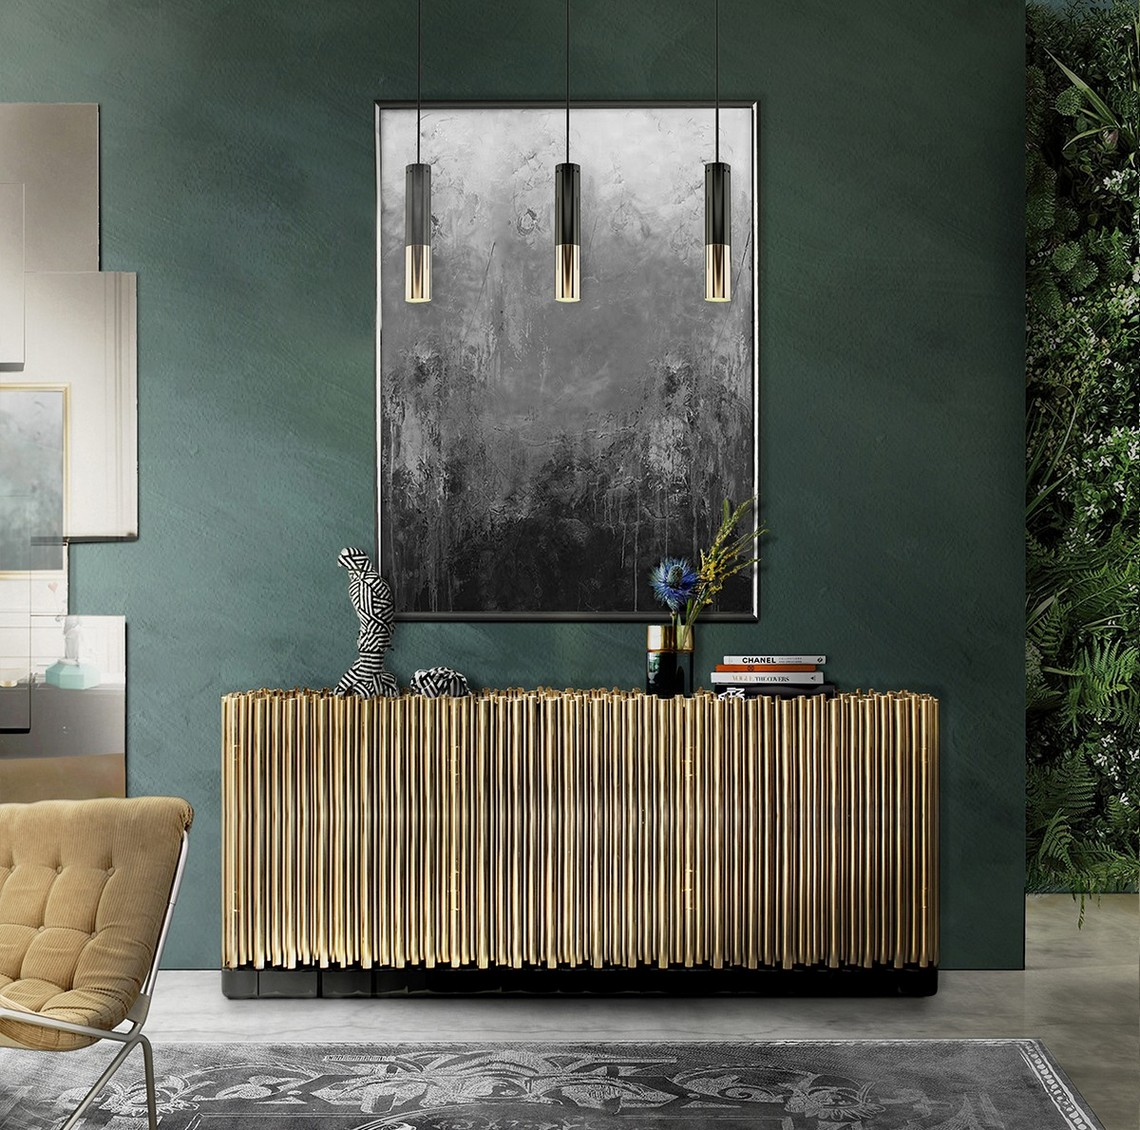 Trendy Sideboards For 2019 (Part II) trendy sideboards Trendy Sideboards For 2019 (Part II) symphony 1